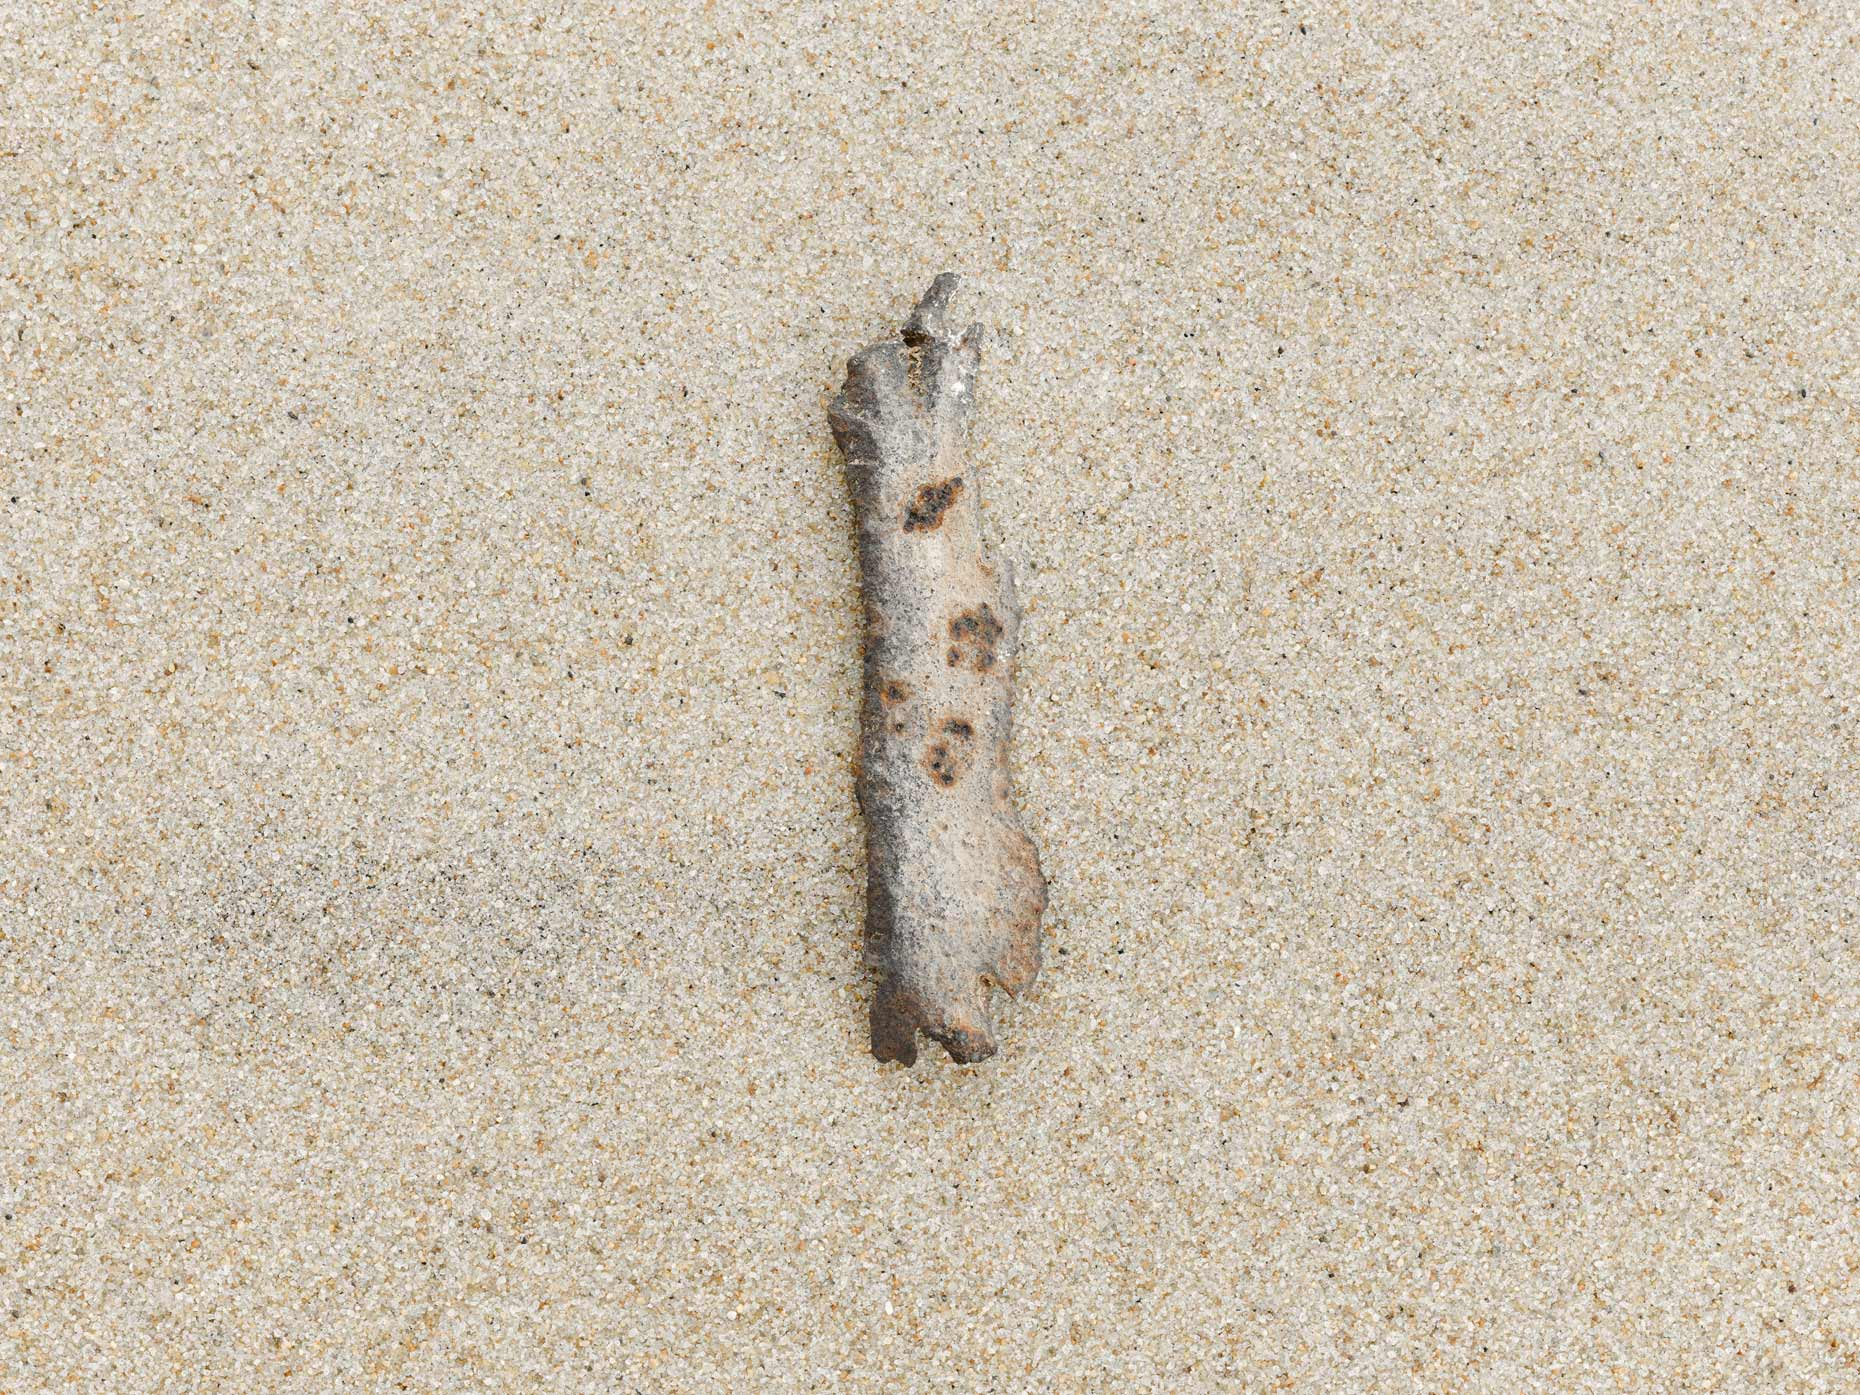 Shrapnel, No. 2, Libya, Traces of War Series